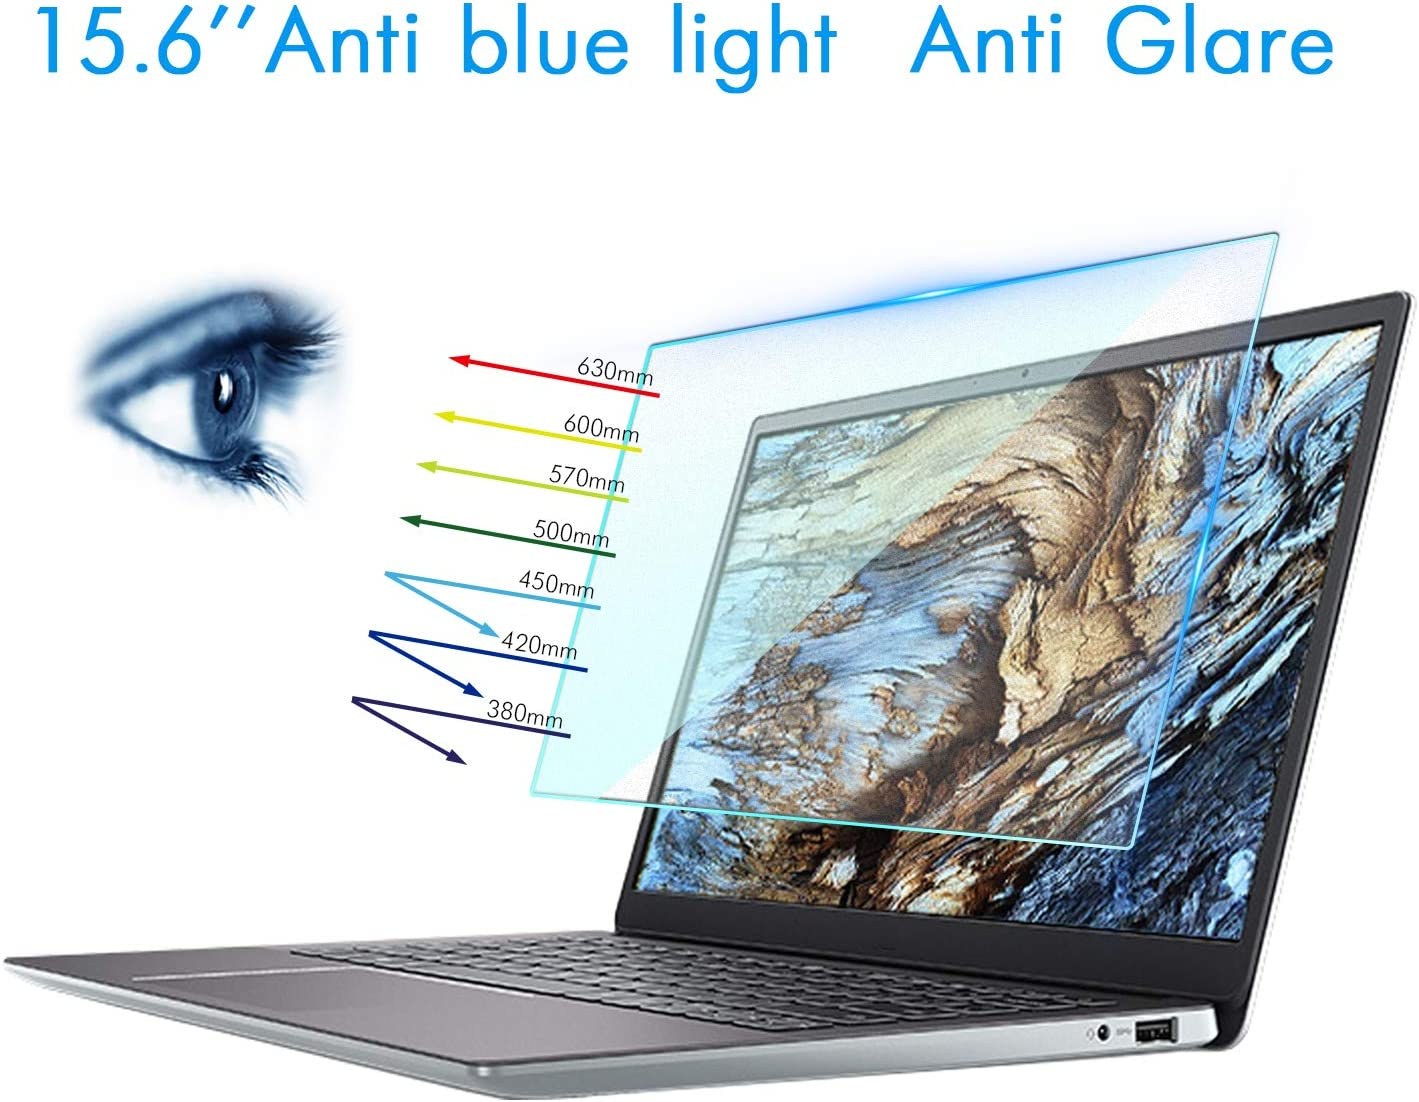 "2 PCS 17.3 Inch Matte Laptop Screen Protector,Anti Glare Filter and Anti Blue Light Screen Protector,for HP Envy/Pavilion17""/Dell Inspiron17.3""/Acer Aspire17.3 Laptop etc,Laptop Accessories (16:9)"